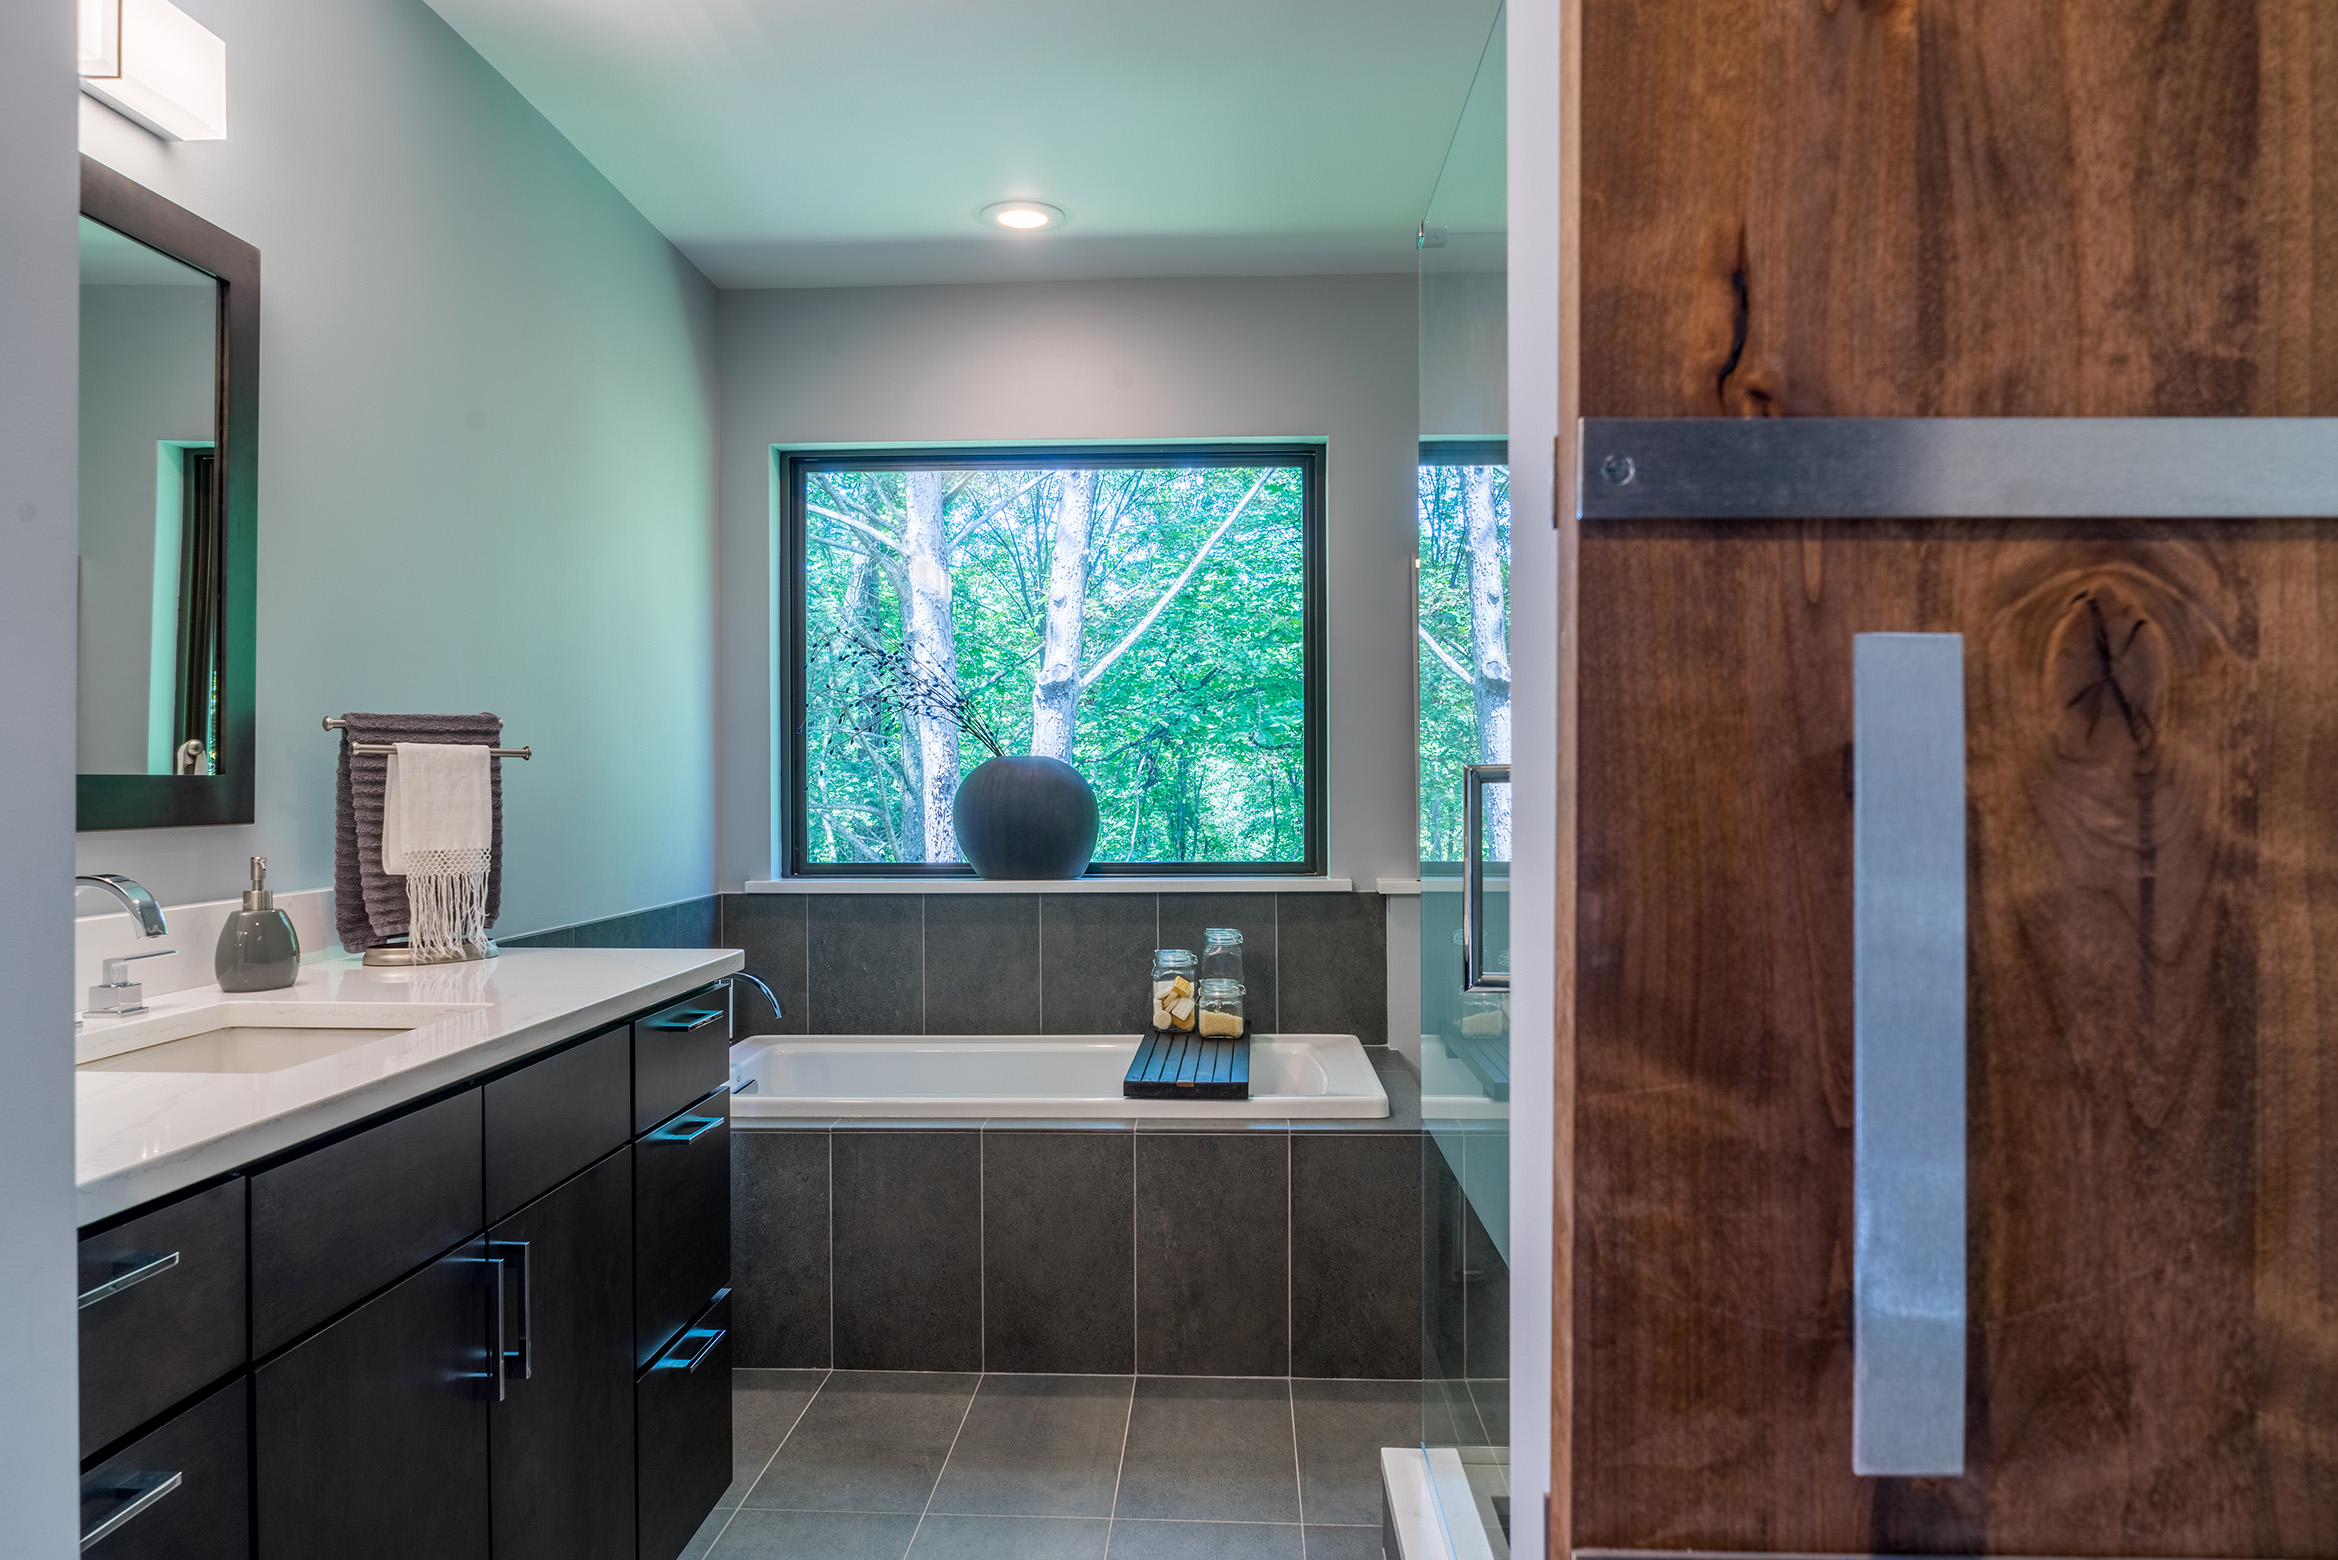 bathroom remodeling,bathroom renovation,bathroom design, northern virginia bathroom design, northern virginia bathroom remodeling, home bathroom remodel, luxury bathroom, luxury bathroom remodel